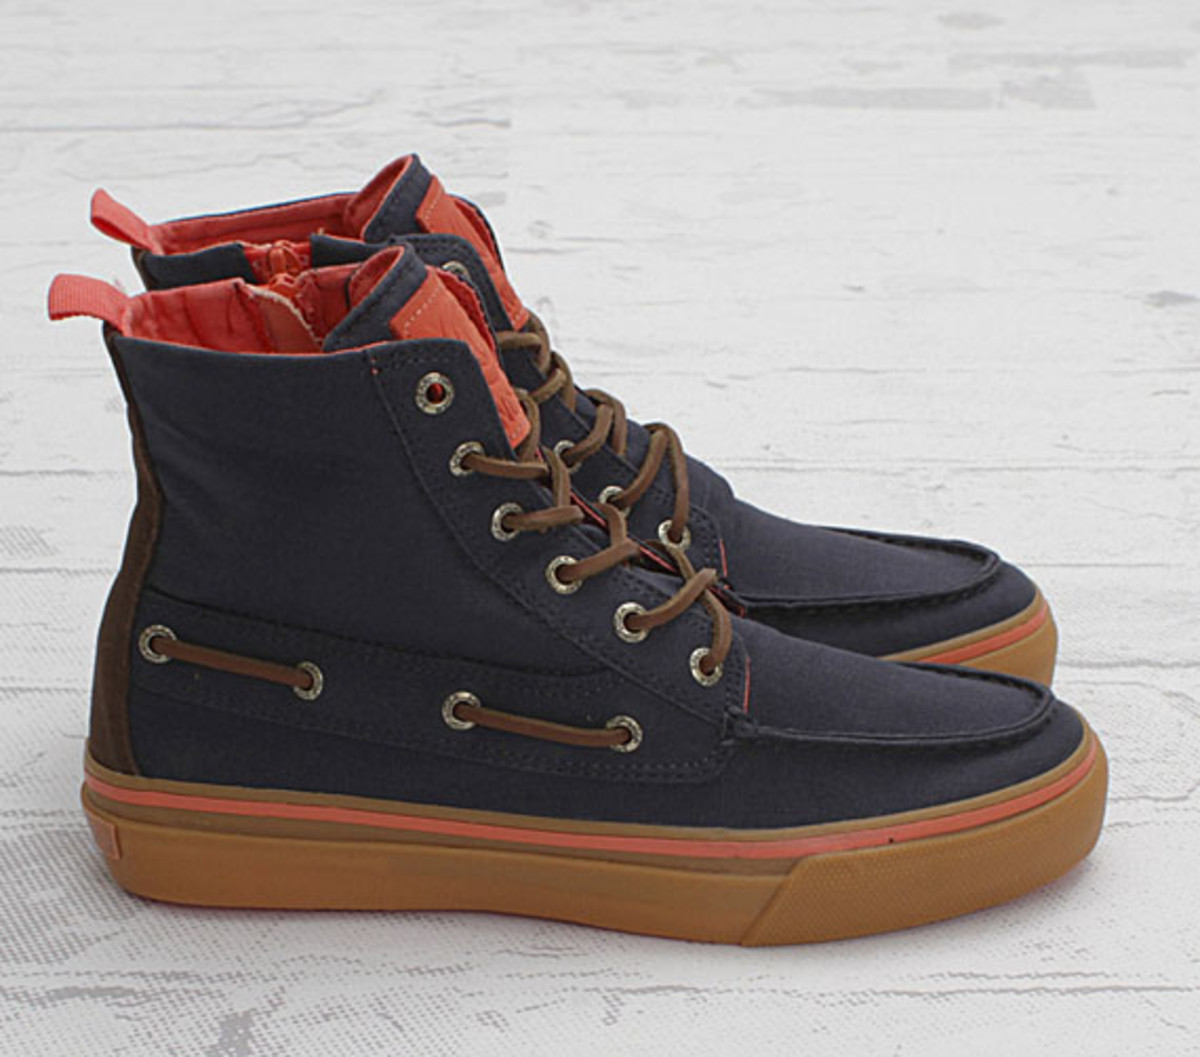 concepts-sperry-top-sider-bahama-boot-fall-2012-15